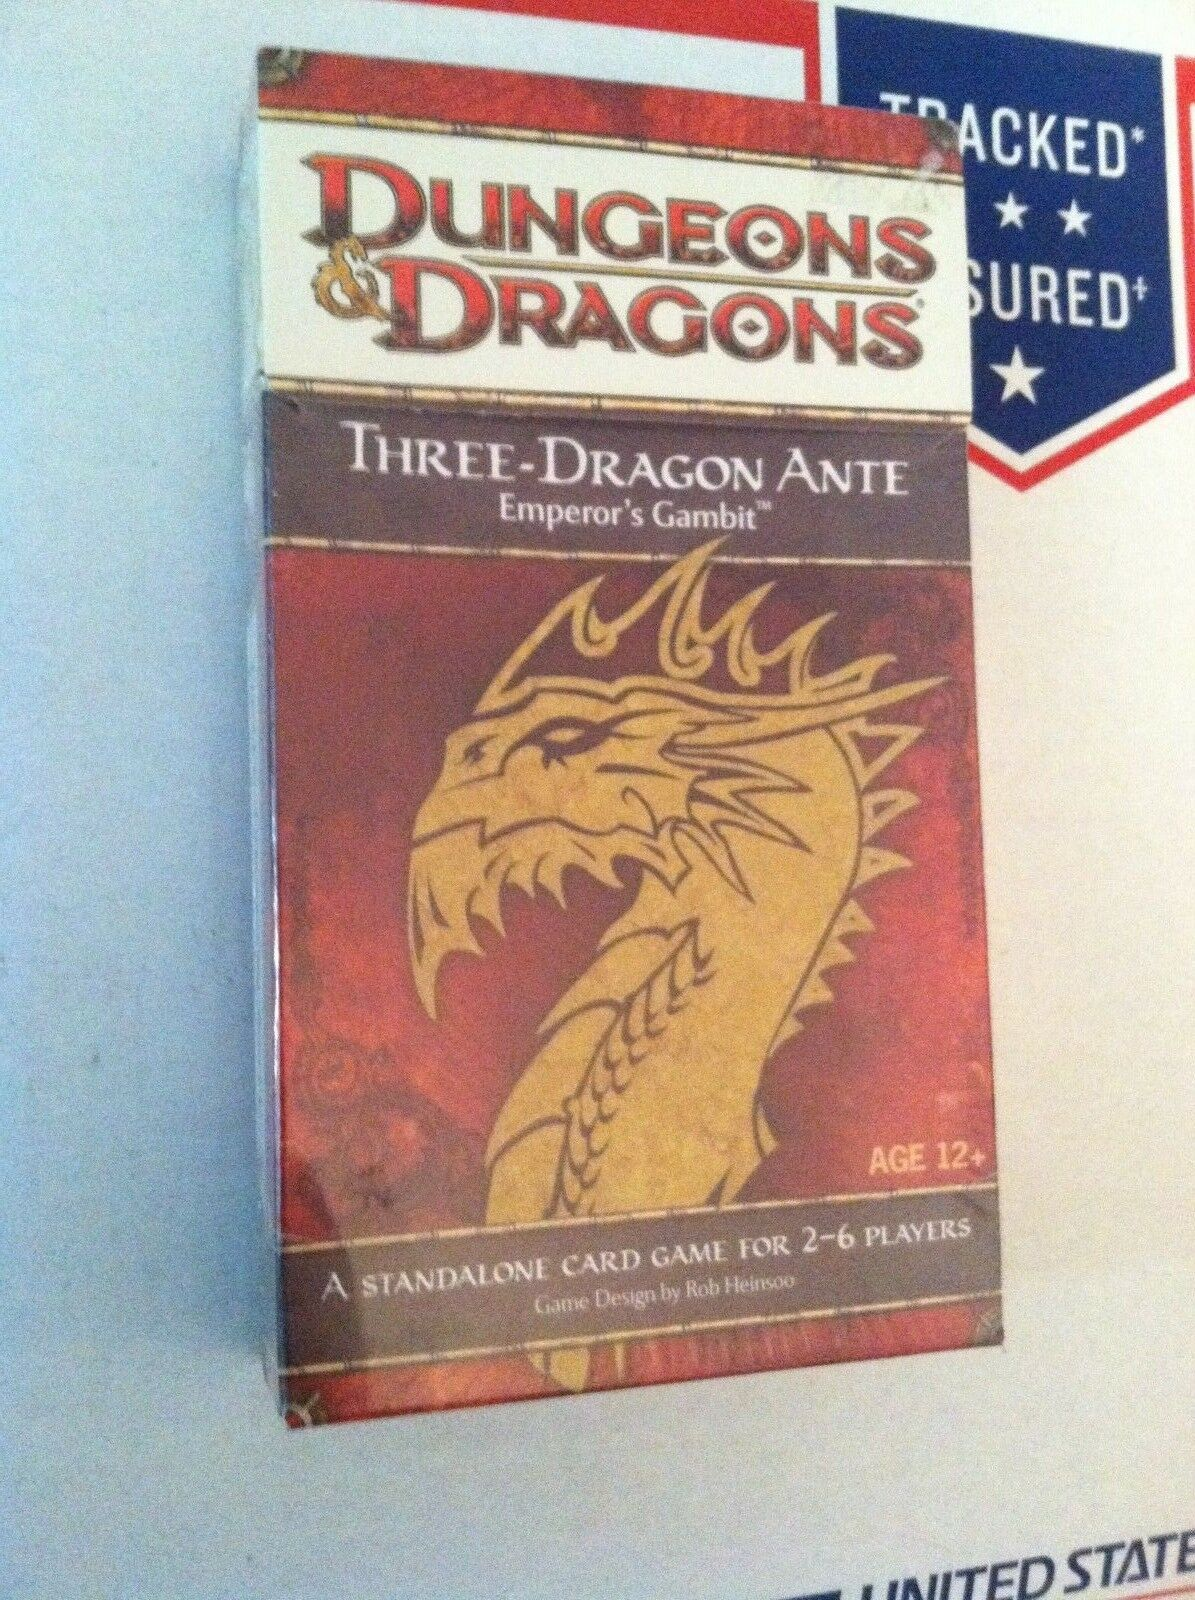 D&D Three-Dragon Ante Emperor's Gambit Card Game Dungeons & & & Dragons SEALED L@@K  6707a4